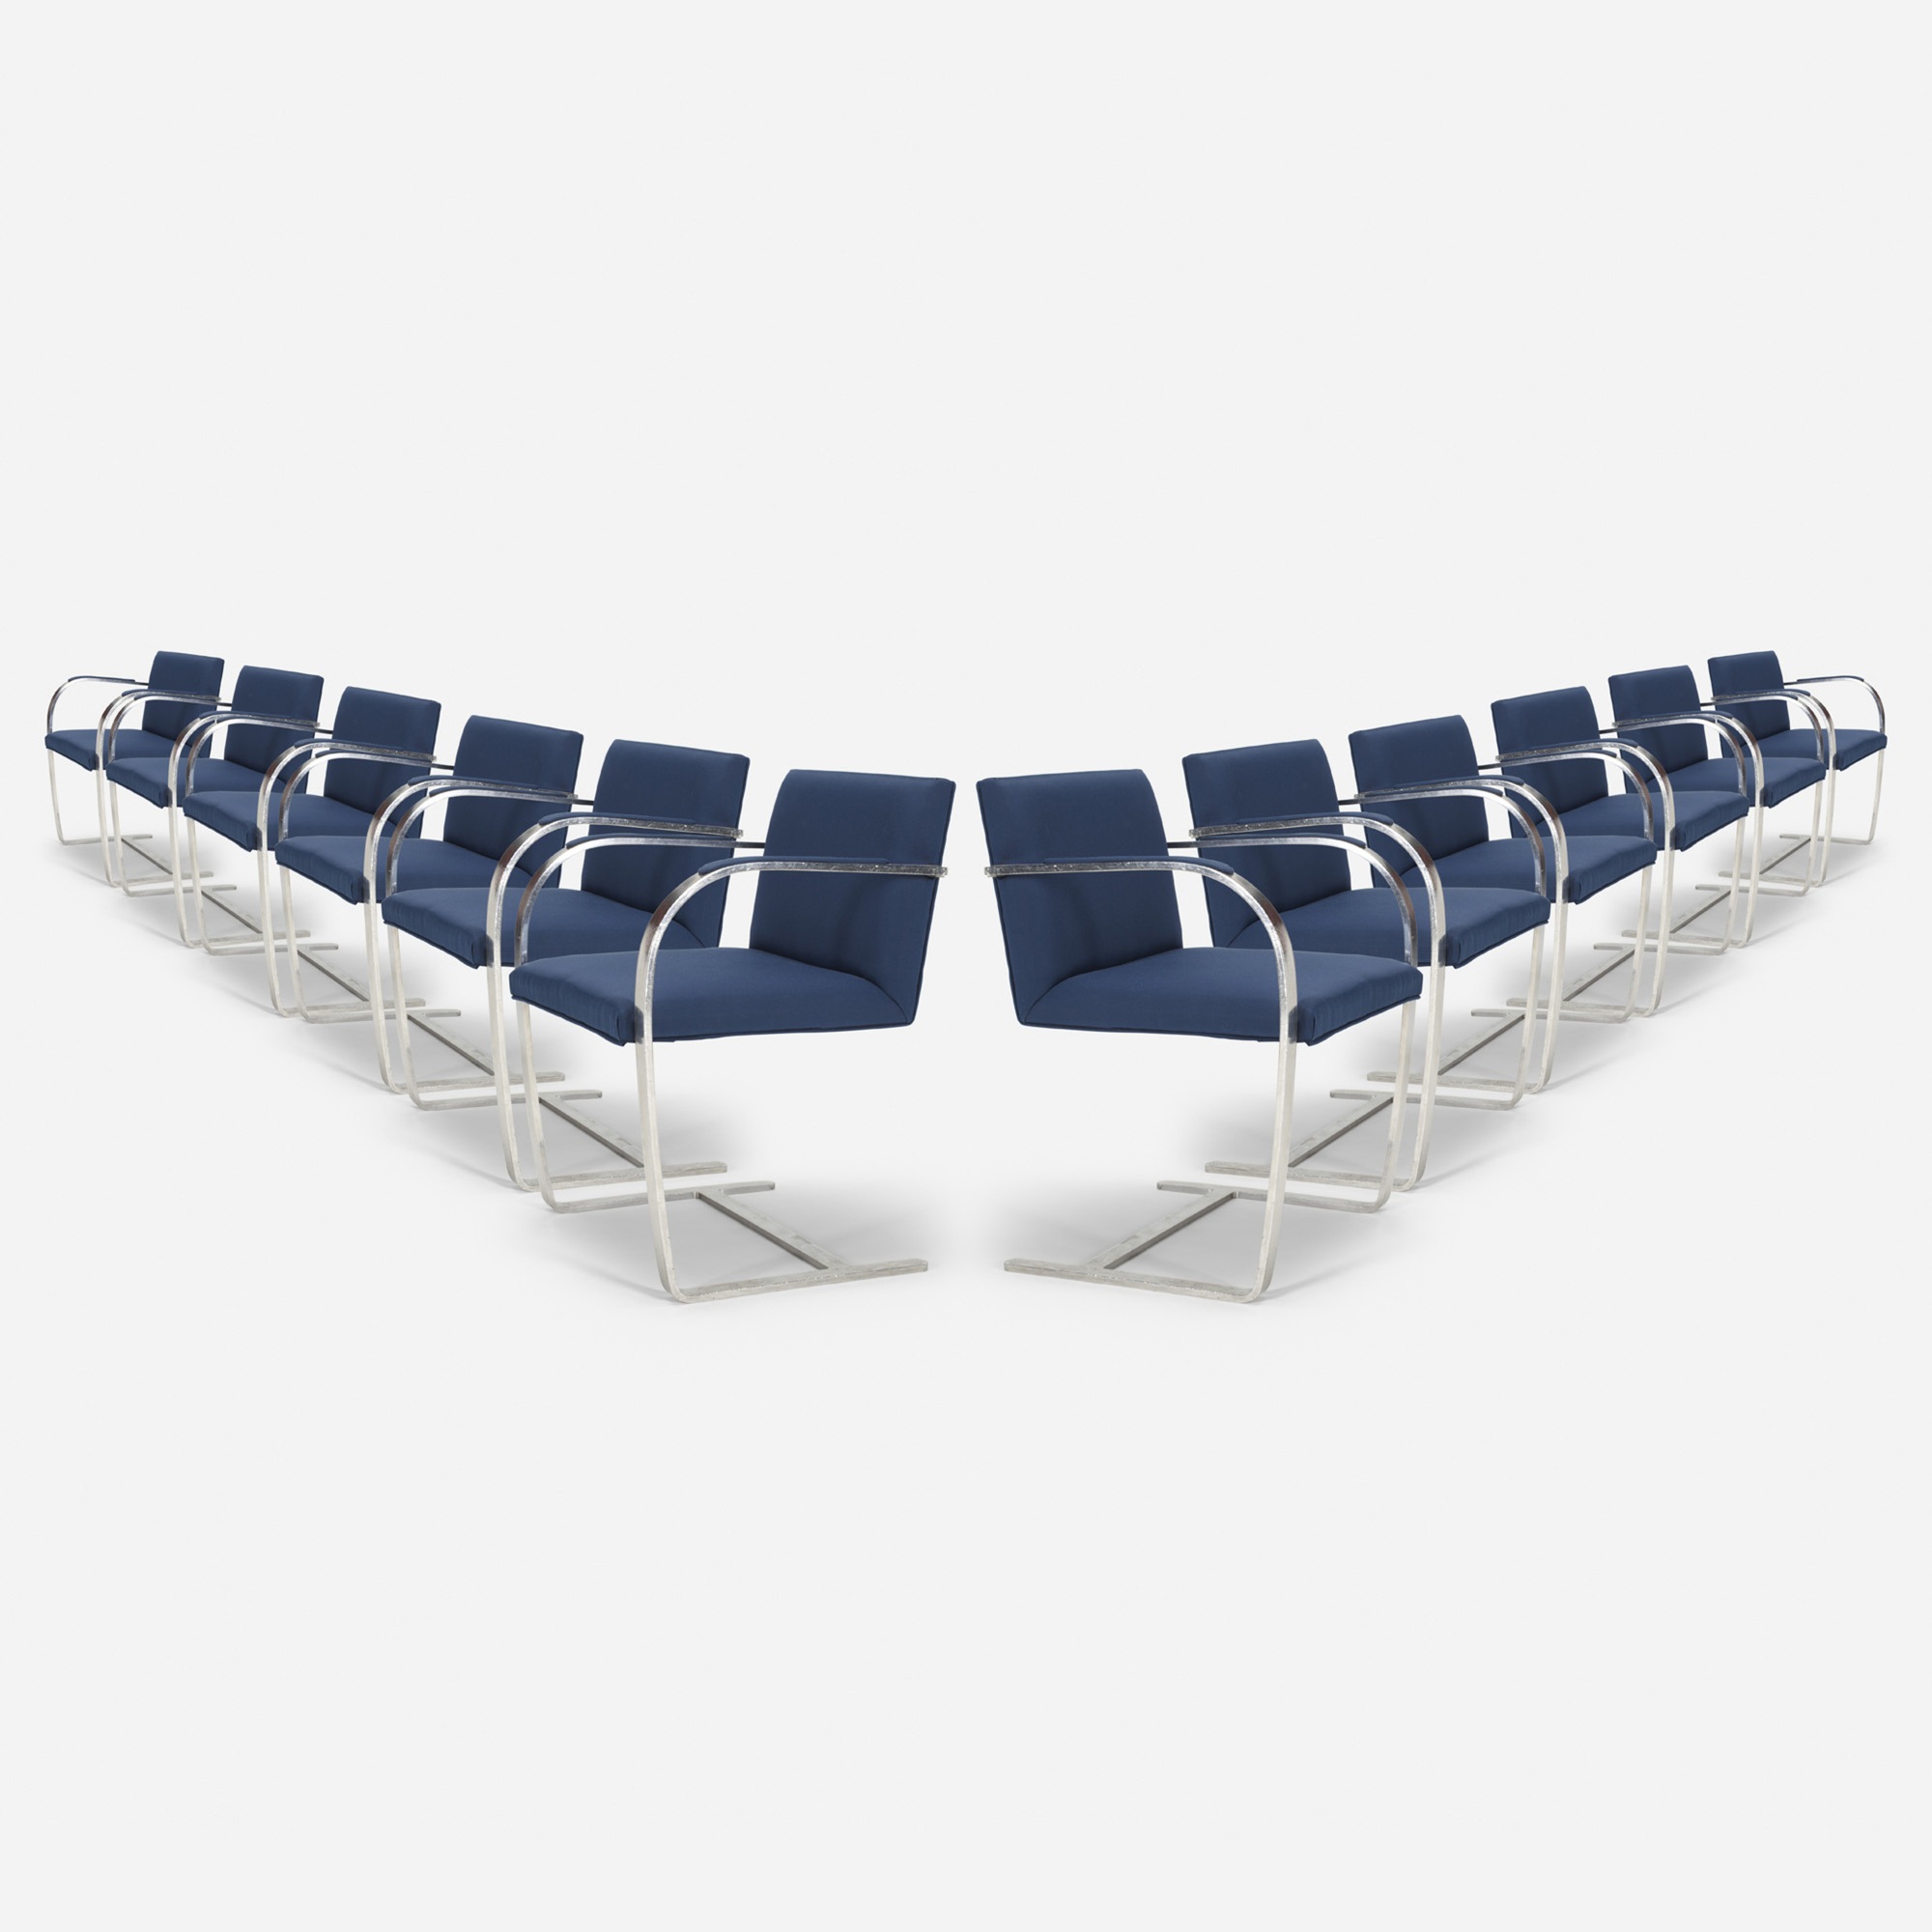 700: Ludwig Mies van der Rohe / Brno chairs from The Four Seasons, set of twelve (1 of 1)